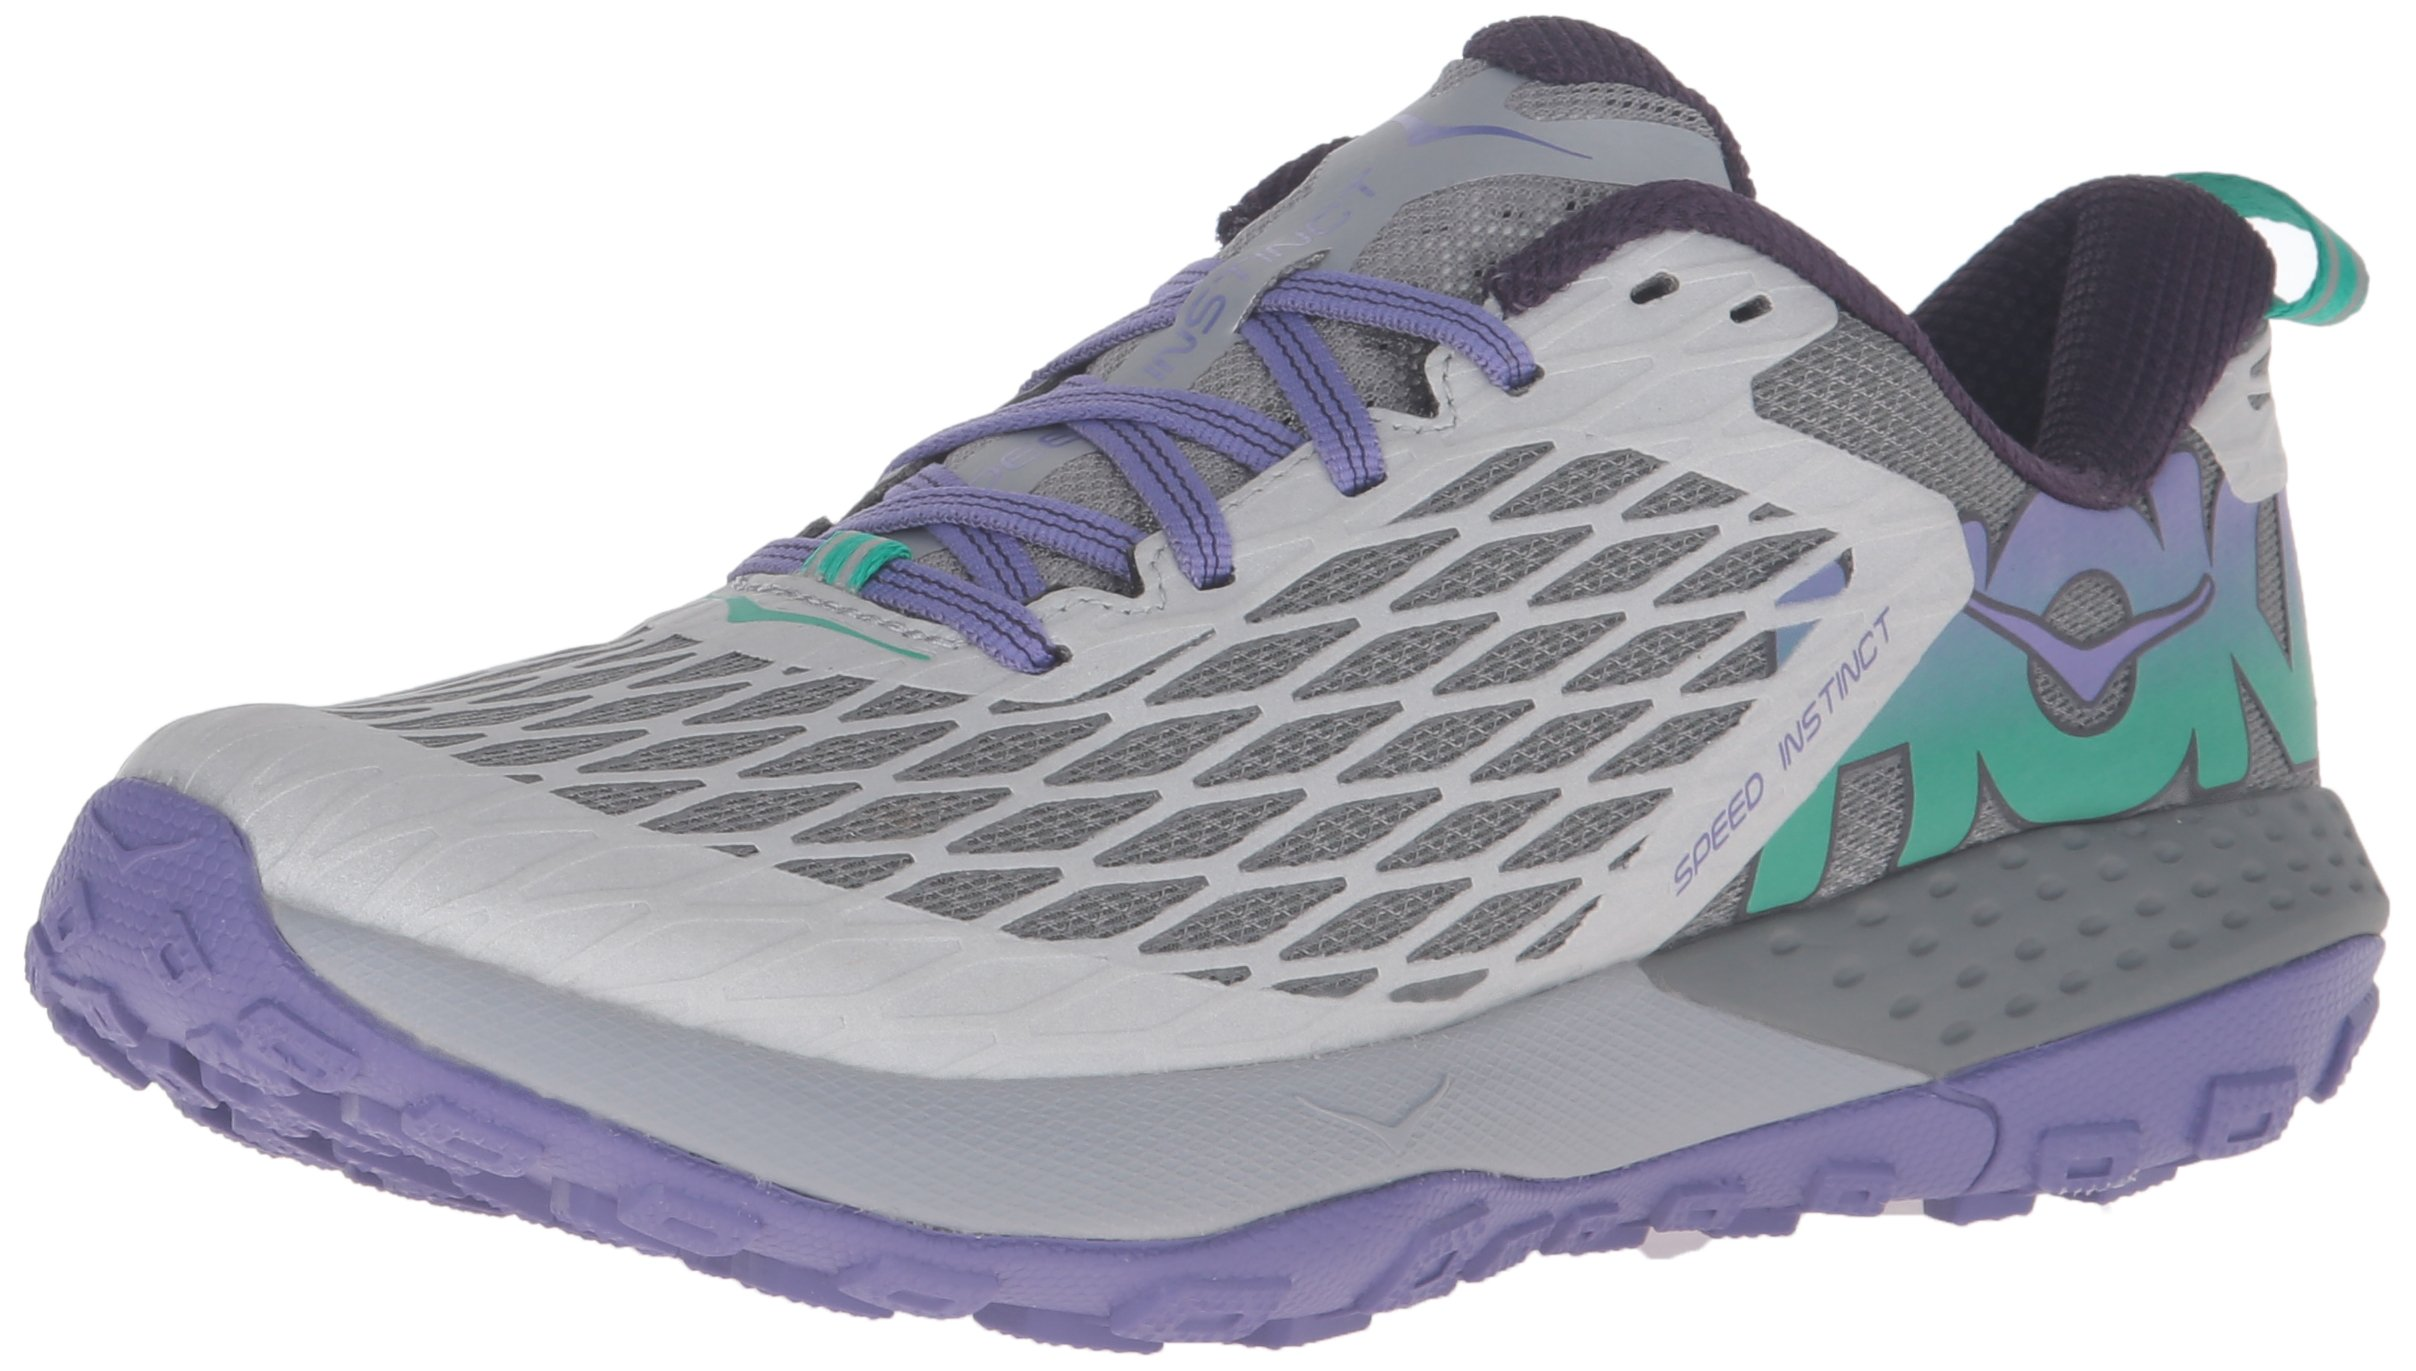 816TRTes5SL - HOKA One One Speed Instinct - W -